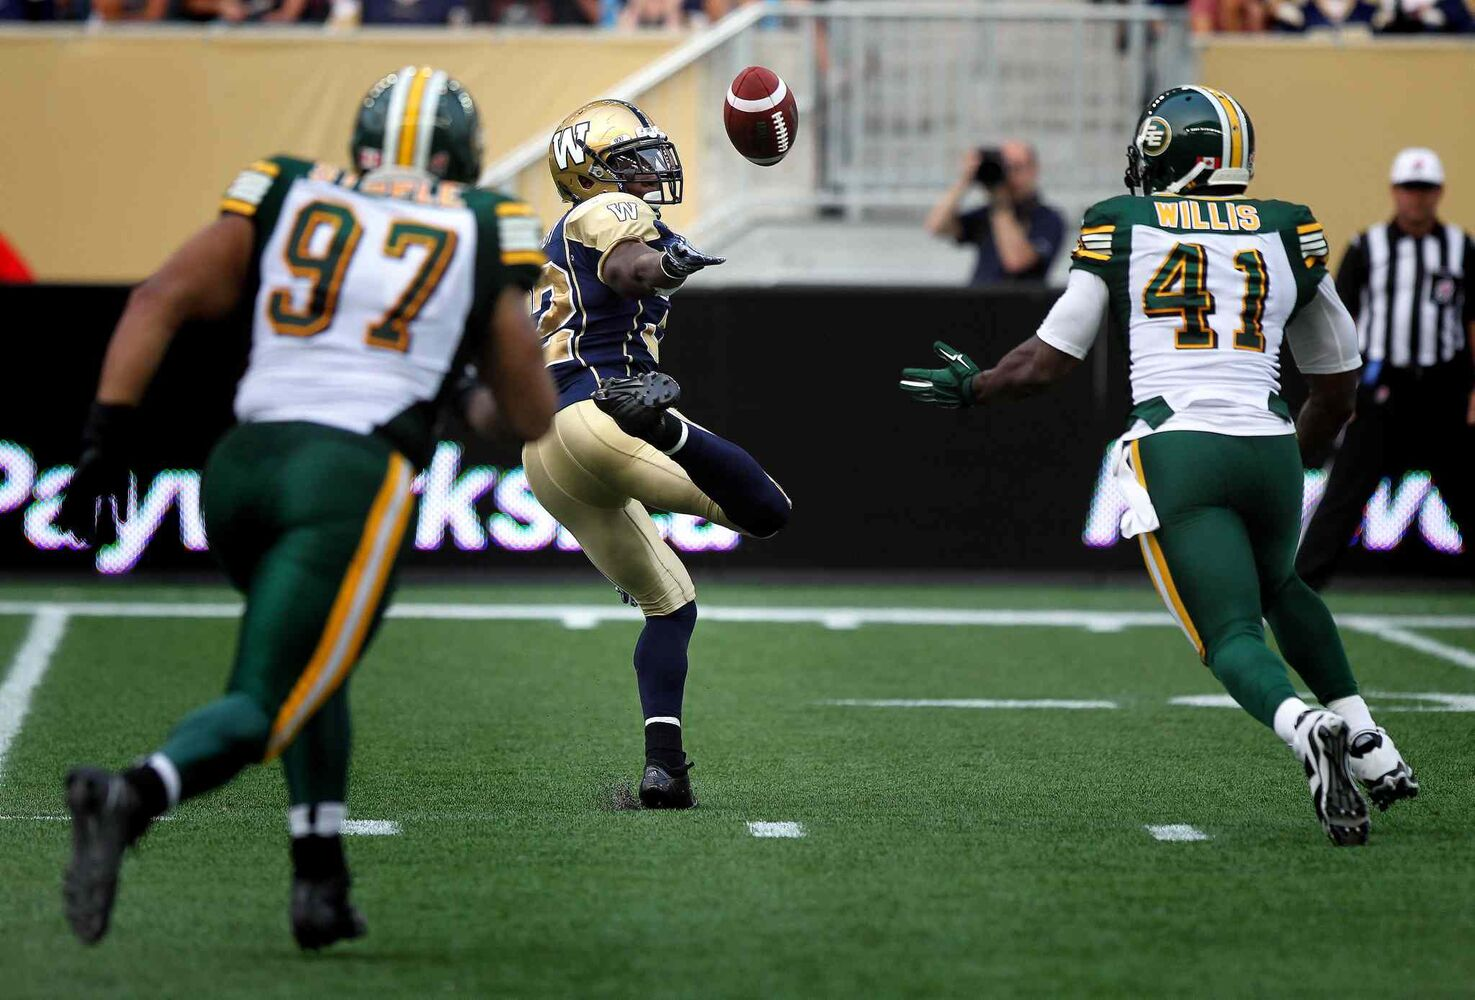 Winnipeg Blue Bombers' running back Nic Grigsby bobbles a pass into the waiting hands of Edmonton Eskimos' #41 Odell Willis early in the game Thursday. Willis took it and ran to score the Eskimo's opening touch down.   (Phil Hossack / Winnipeg Free Press)